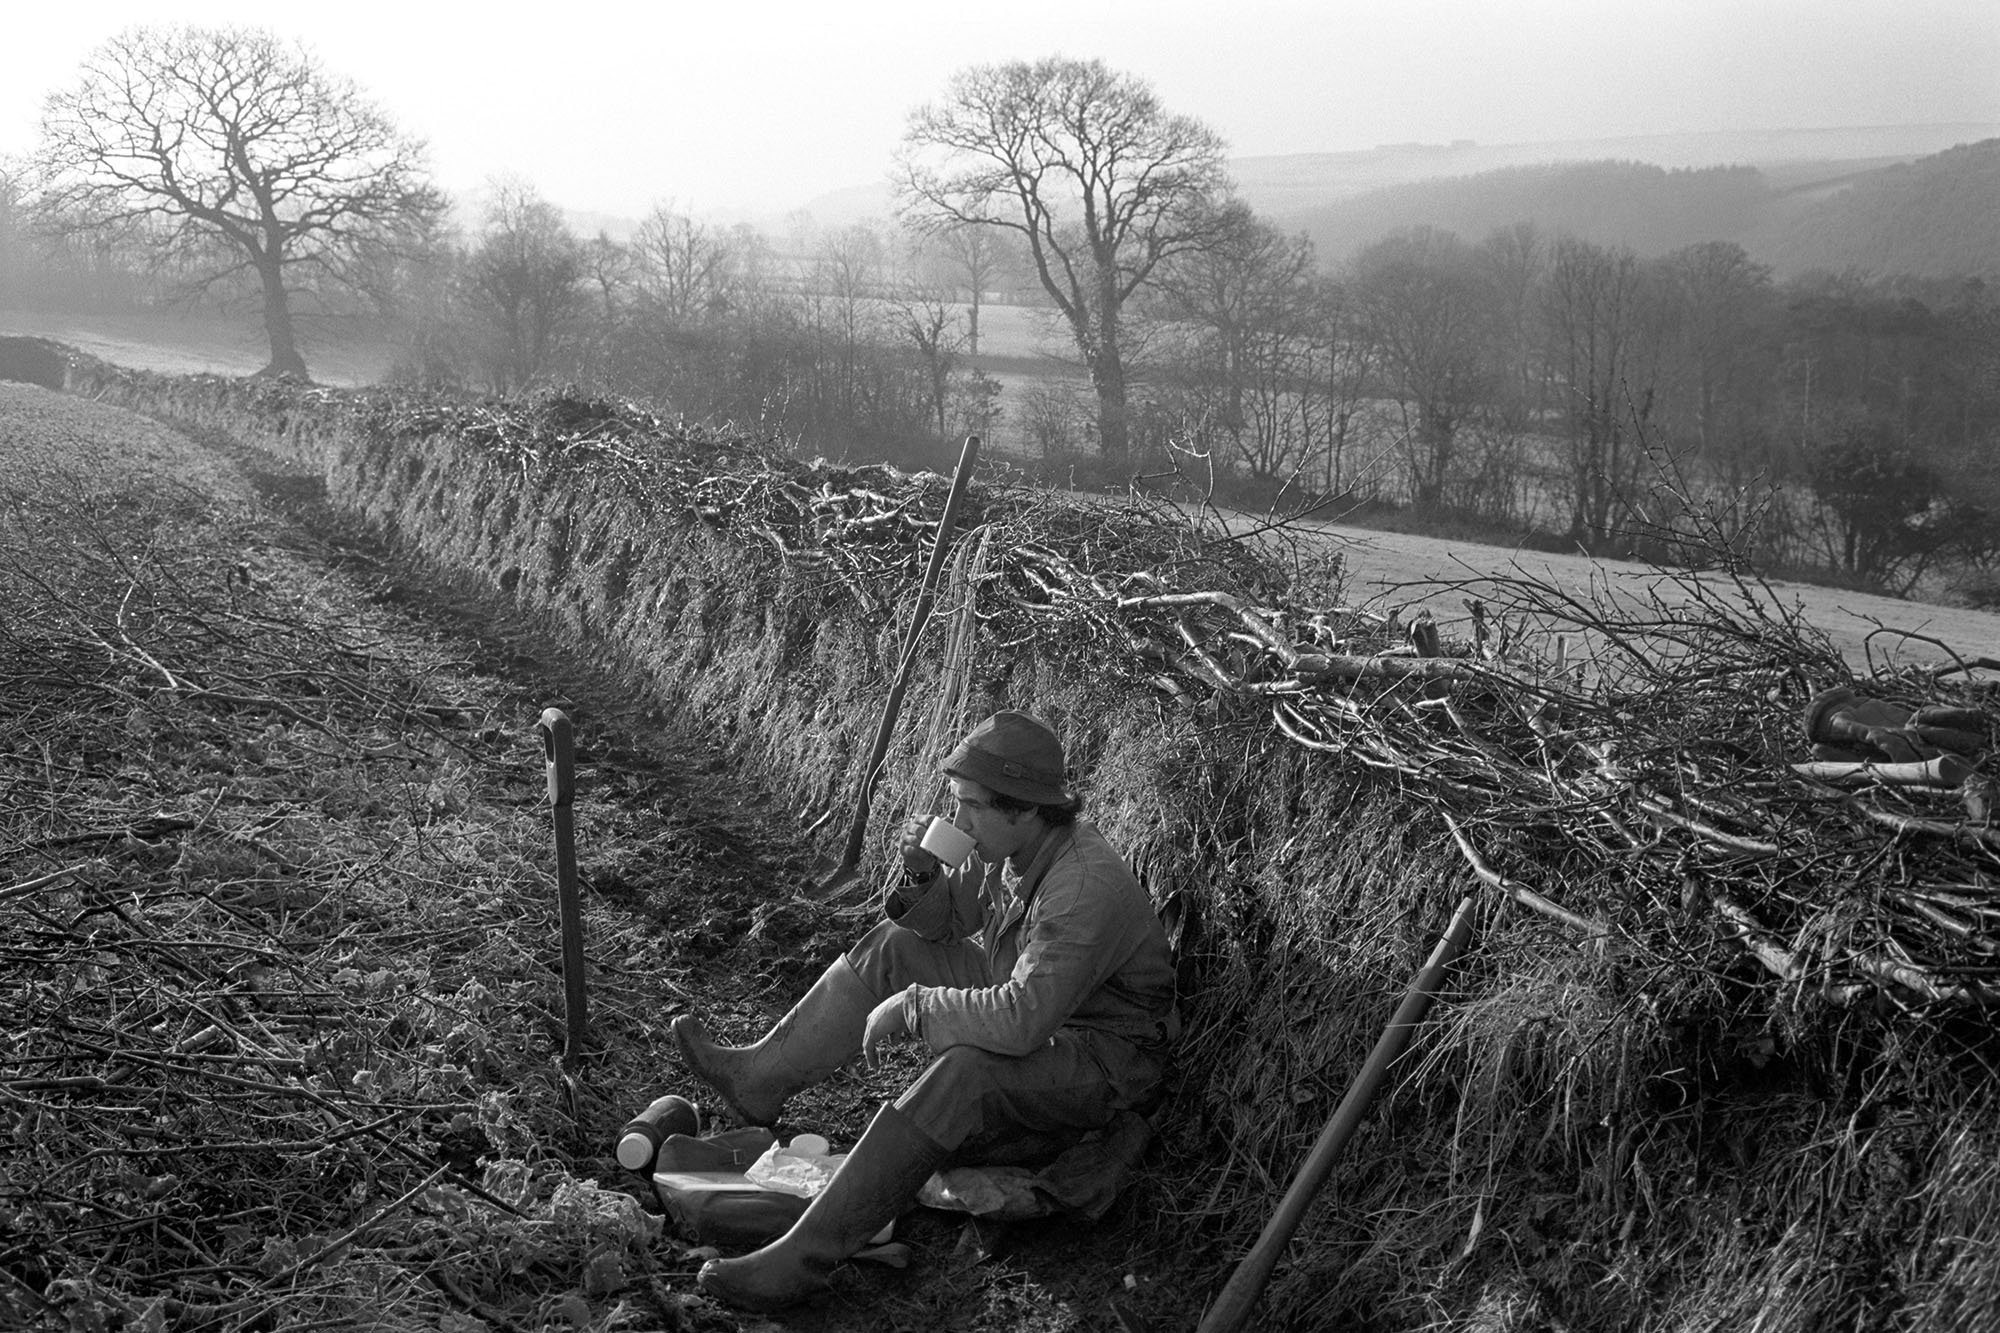 'Hedger's Lunch Break' taken in Langham, Dolton, 1980 by James Ravilious for the Beaford Archive